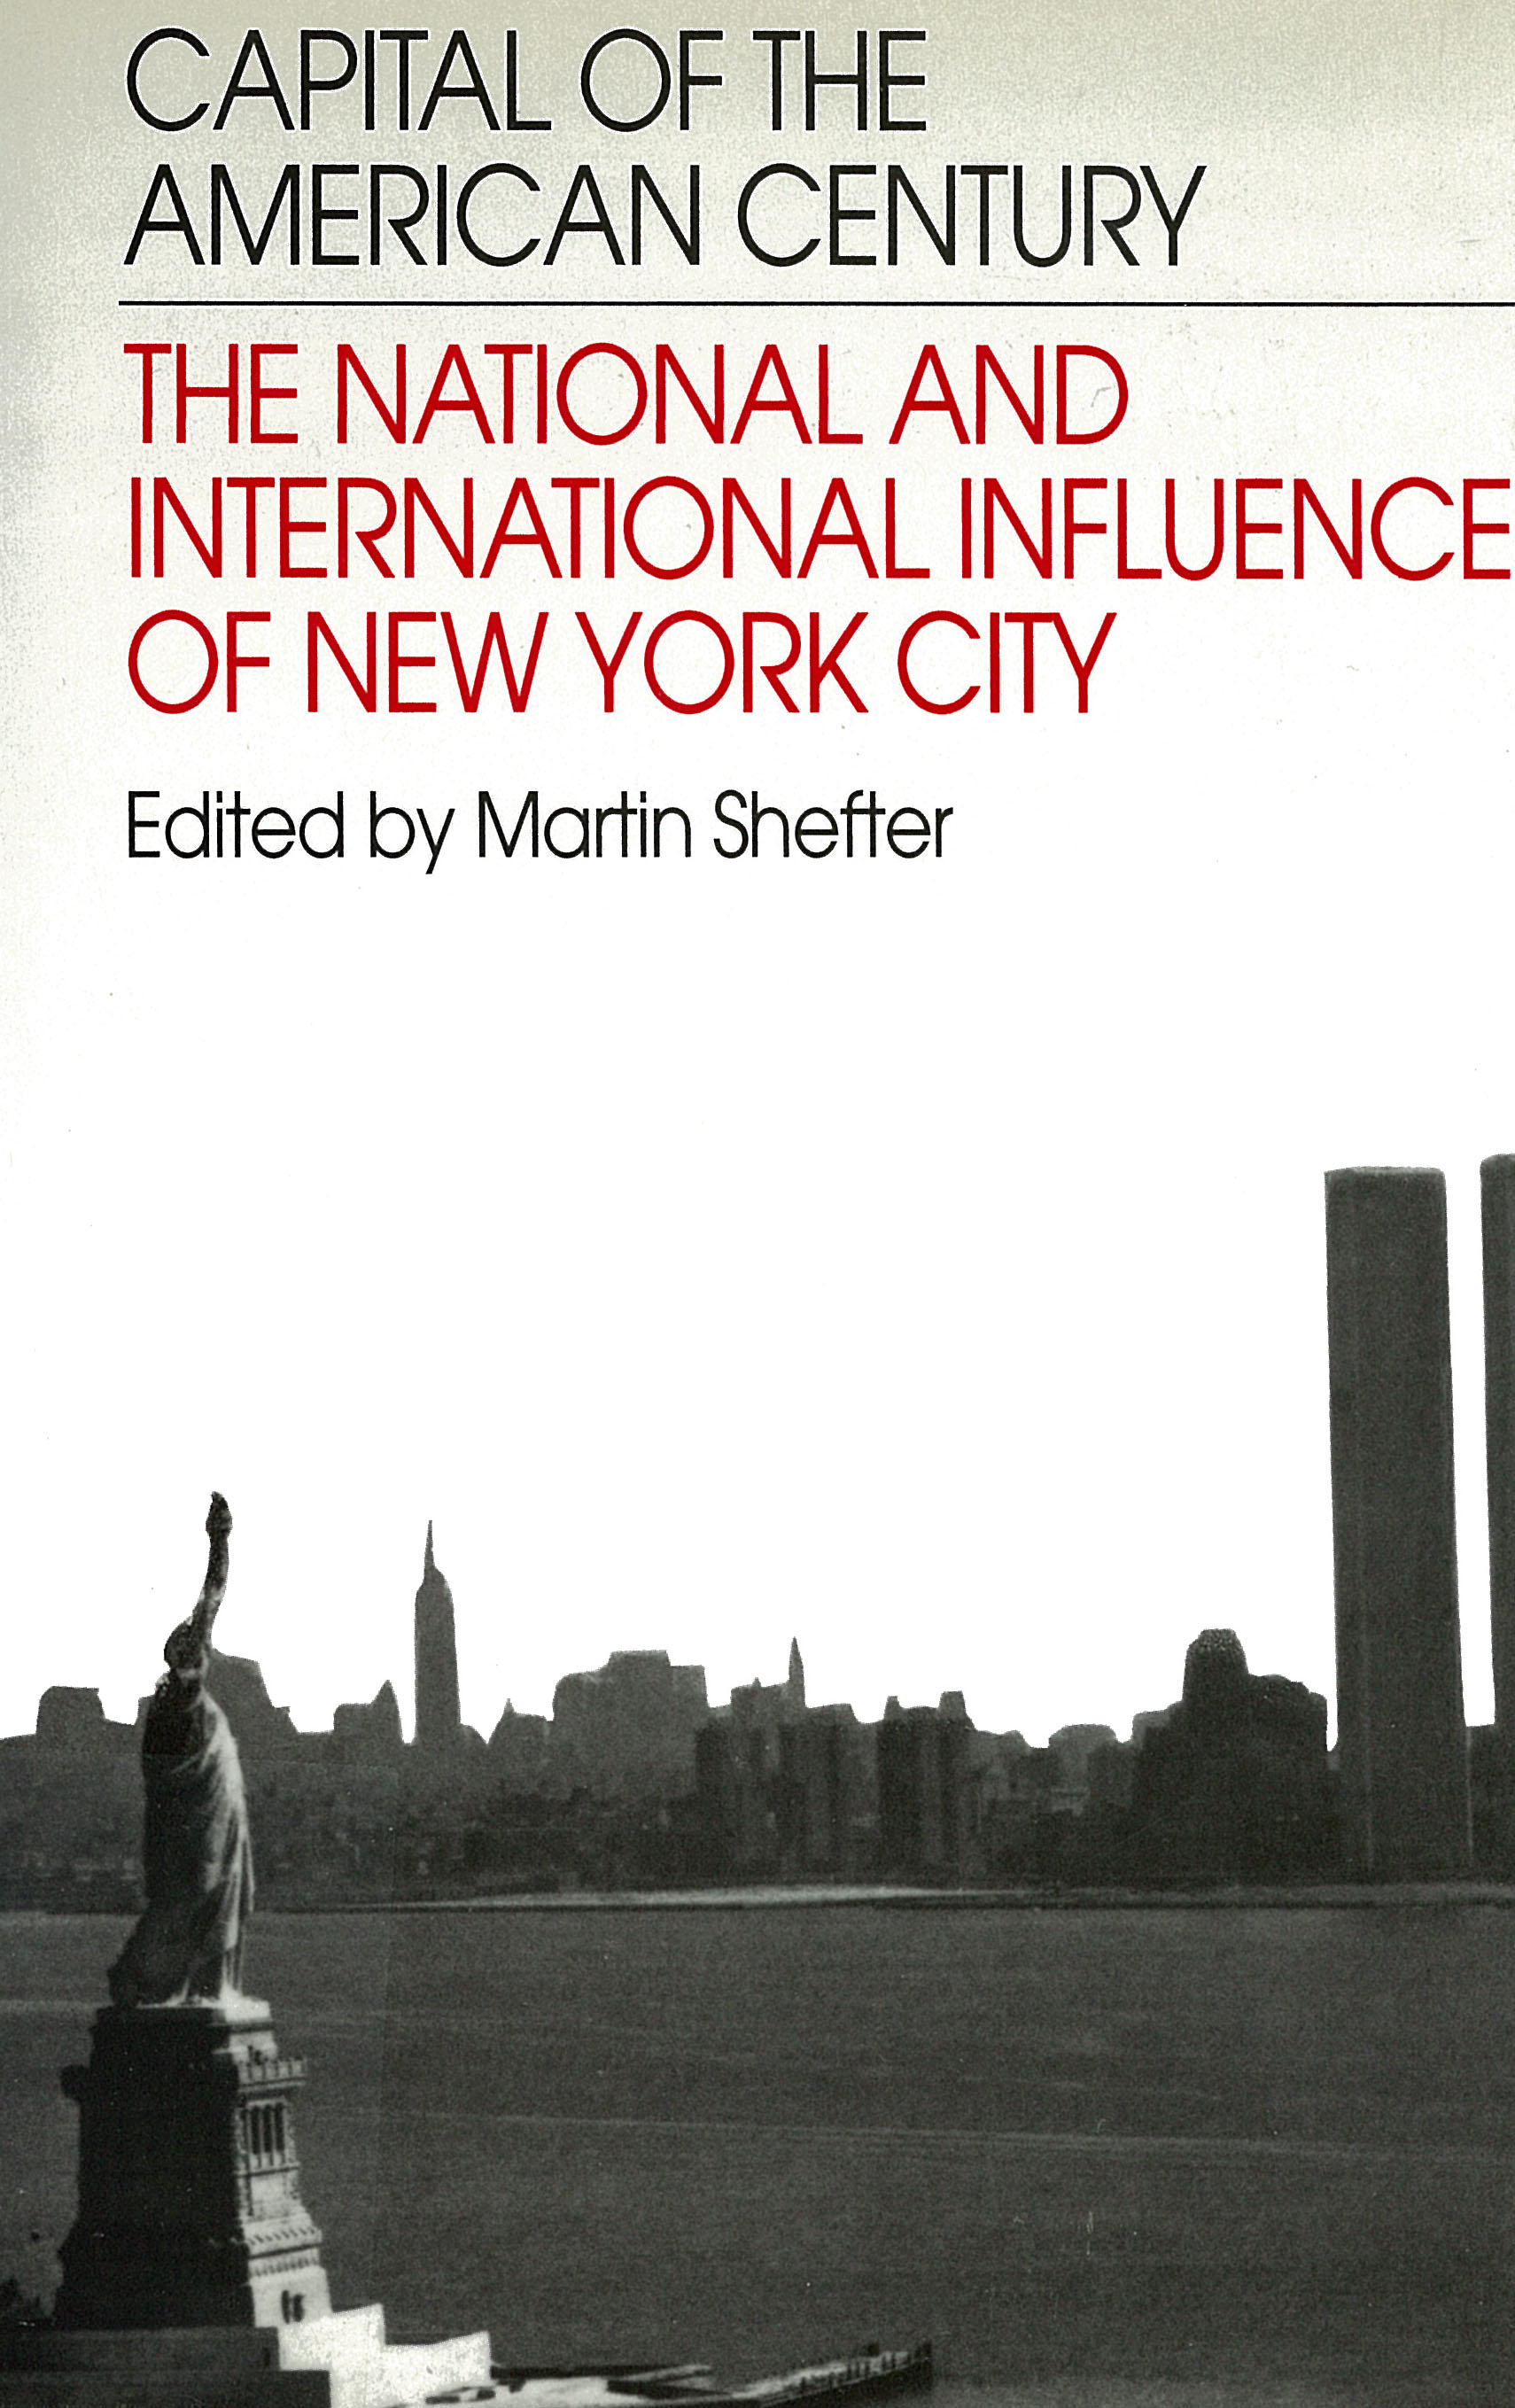 power culture and place essays on new york city rsf capital of the american century the national and international influence of new york city